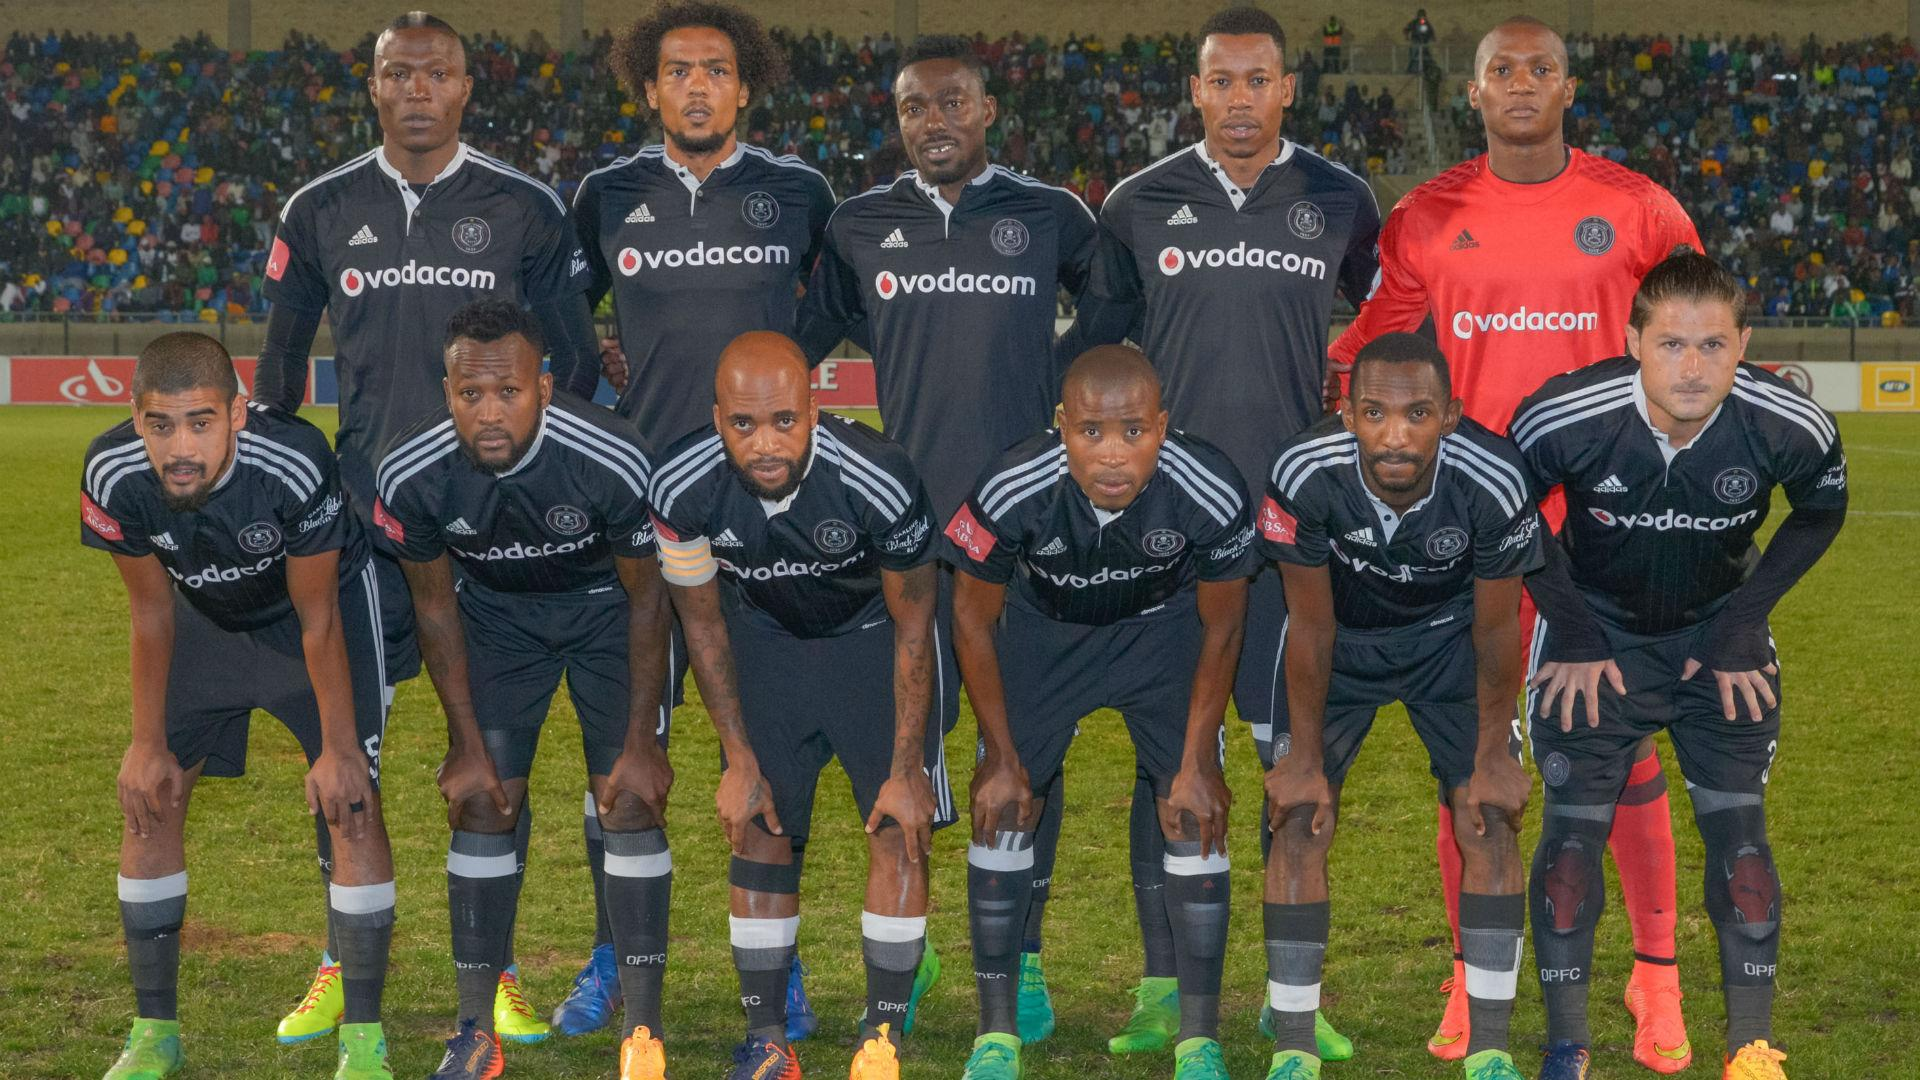 EXTRA TIME: Orlando Pirates feed the poor and help the needy